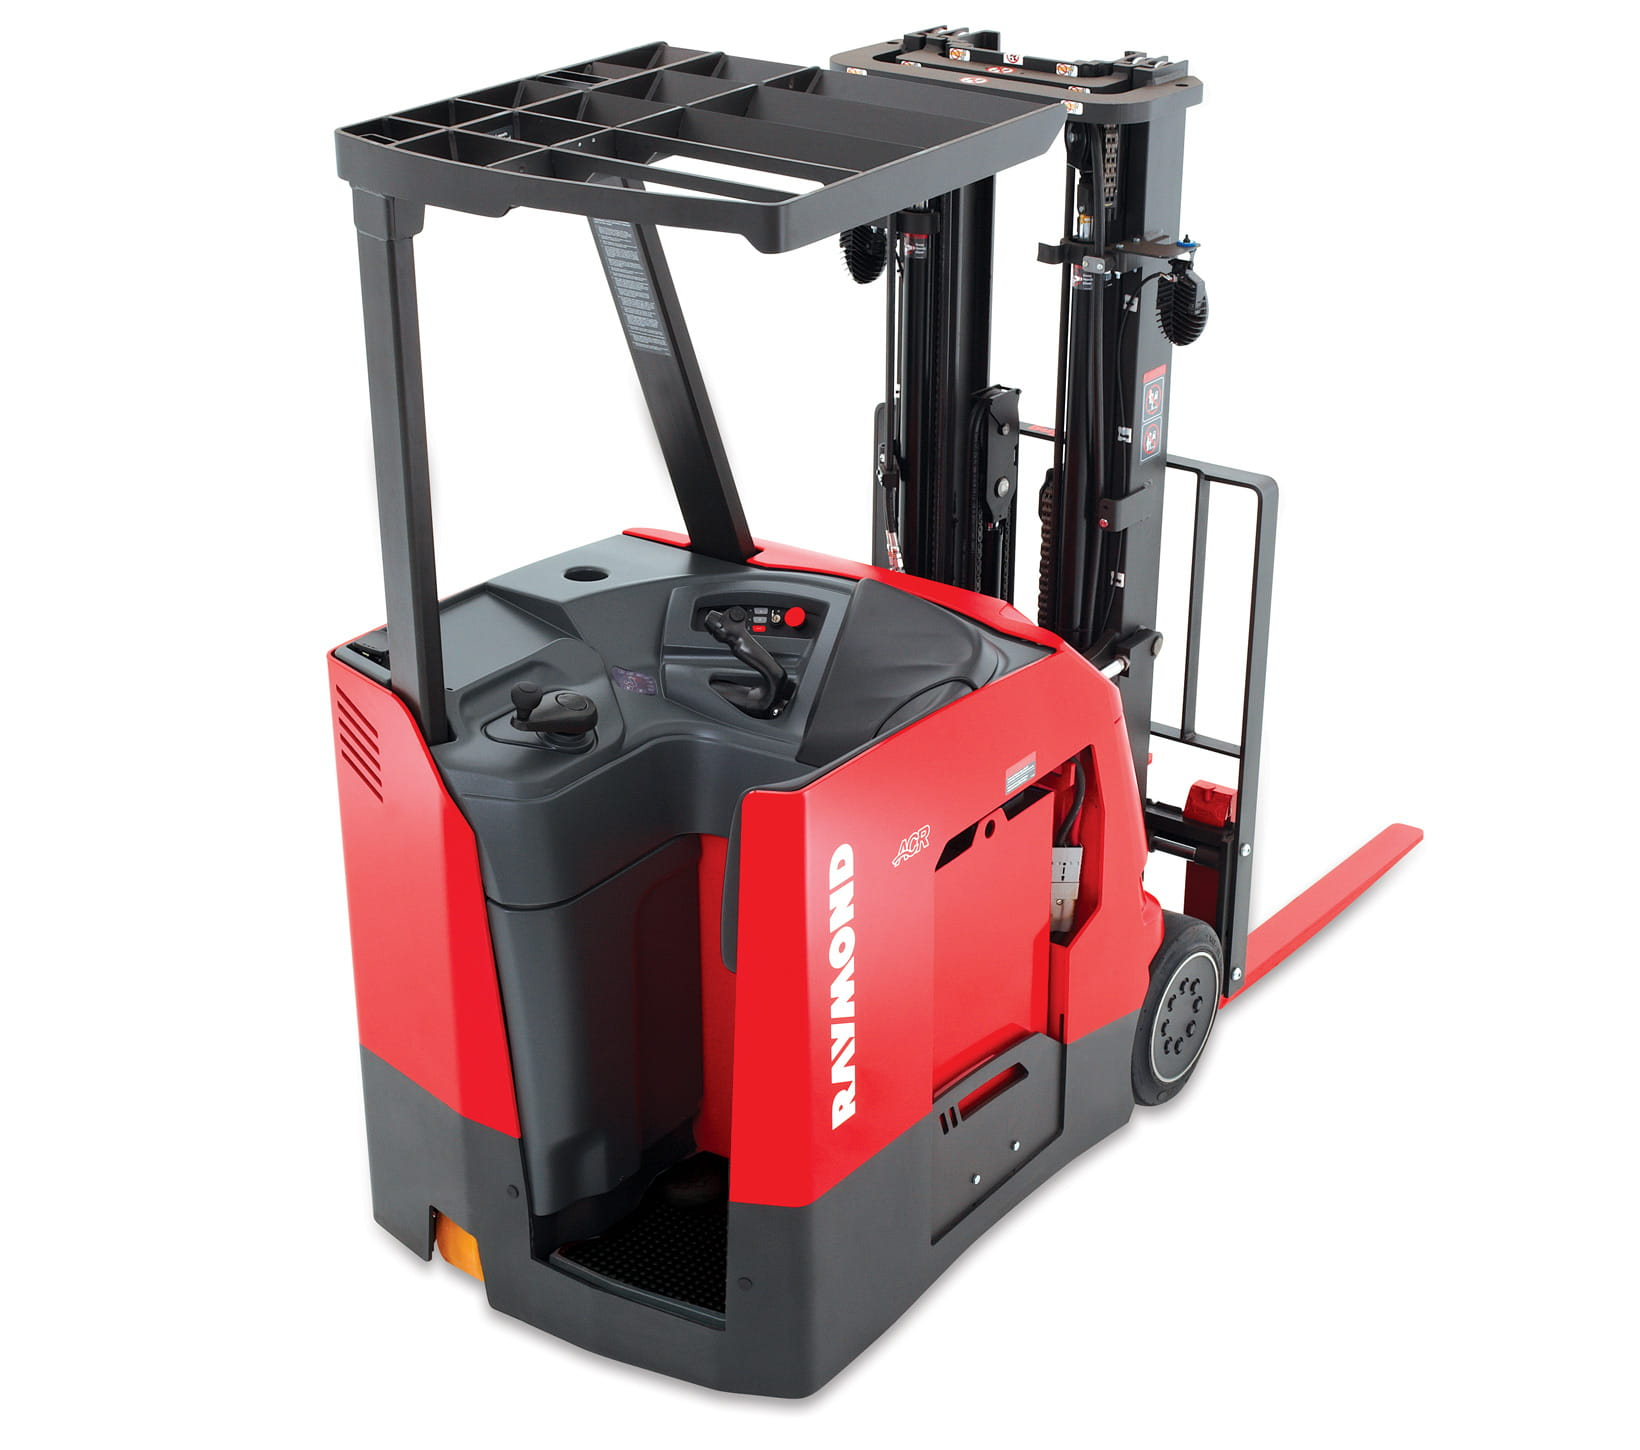 Raymond Stand Up Forklifts Stand Up Forklift